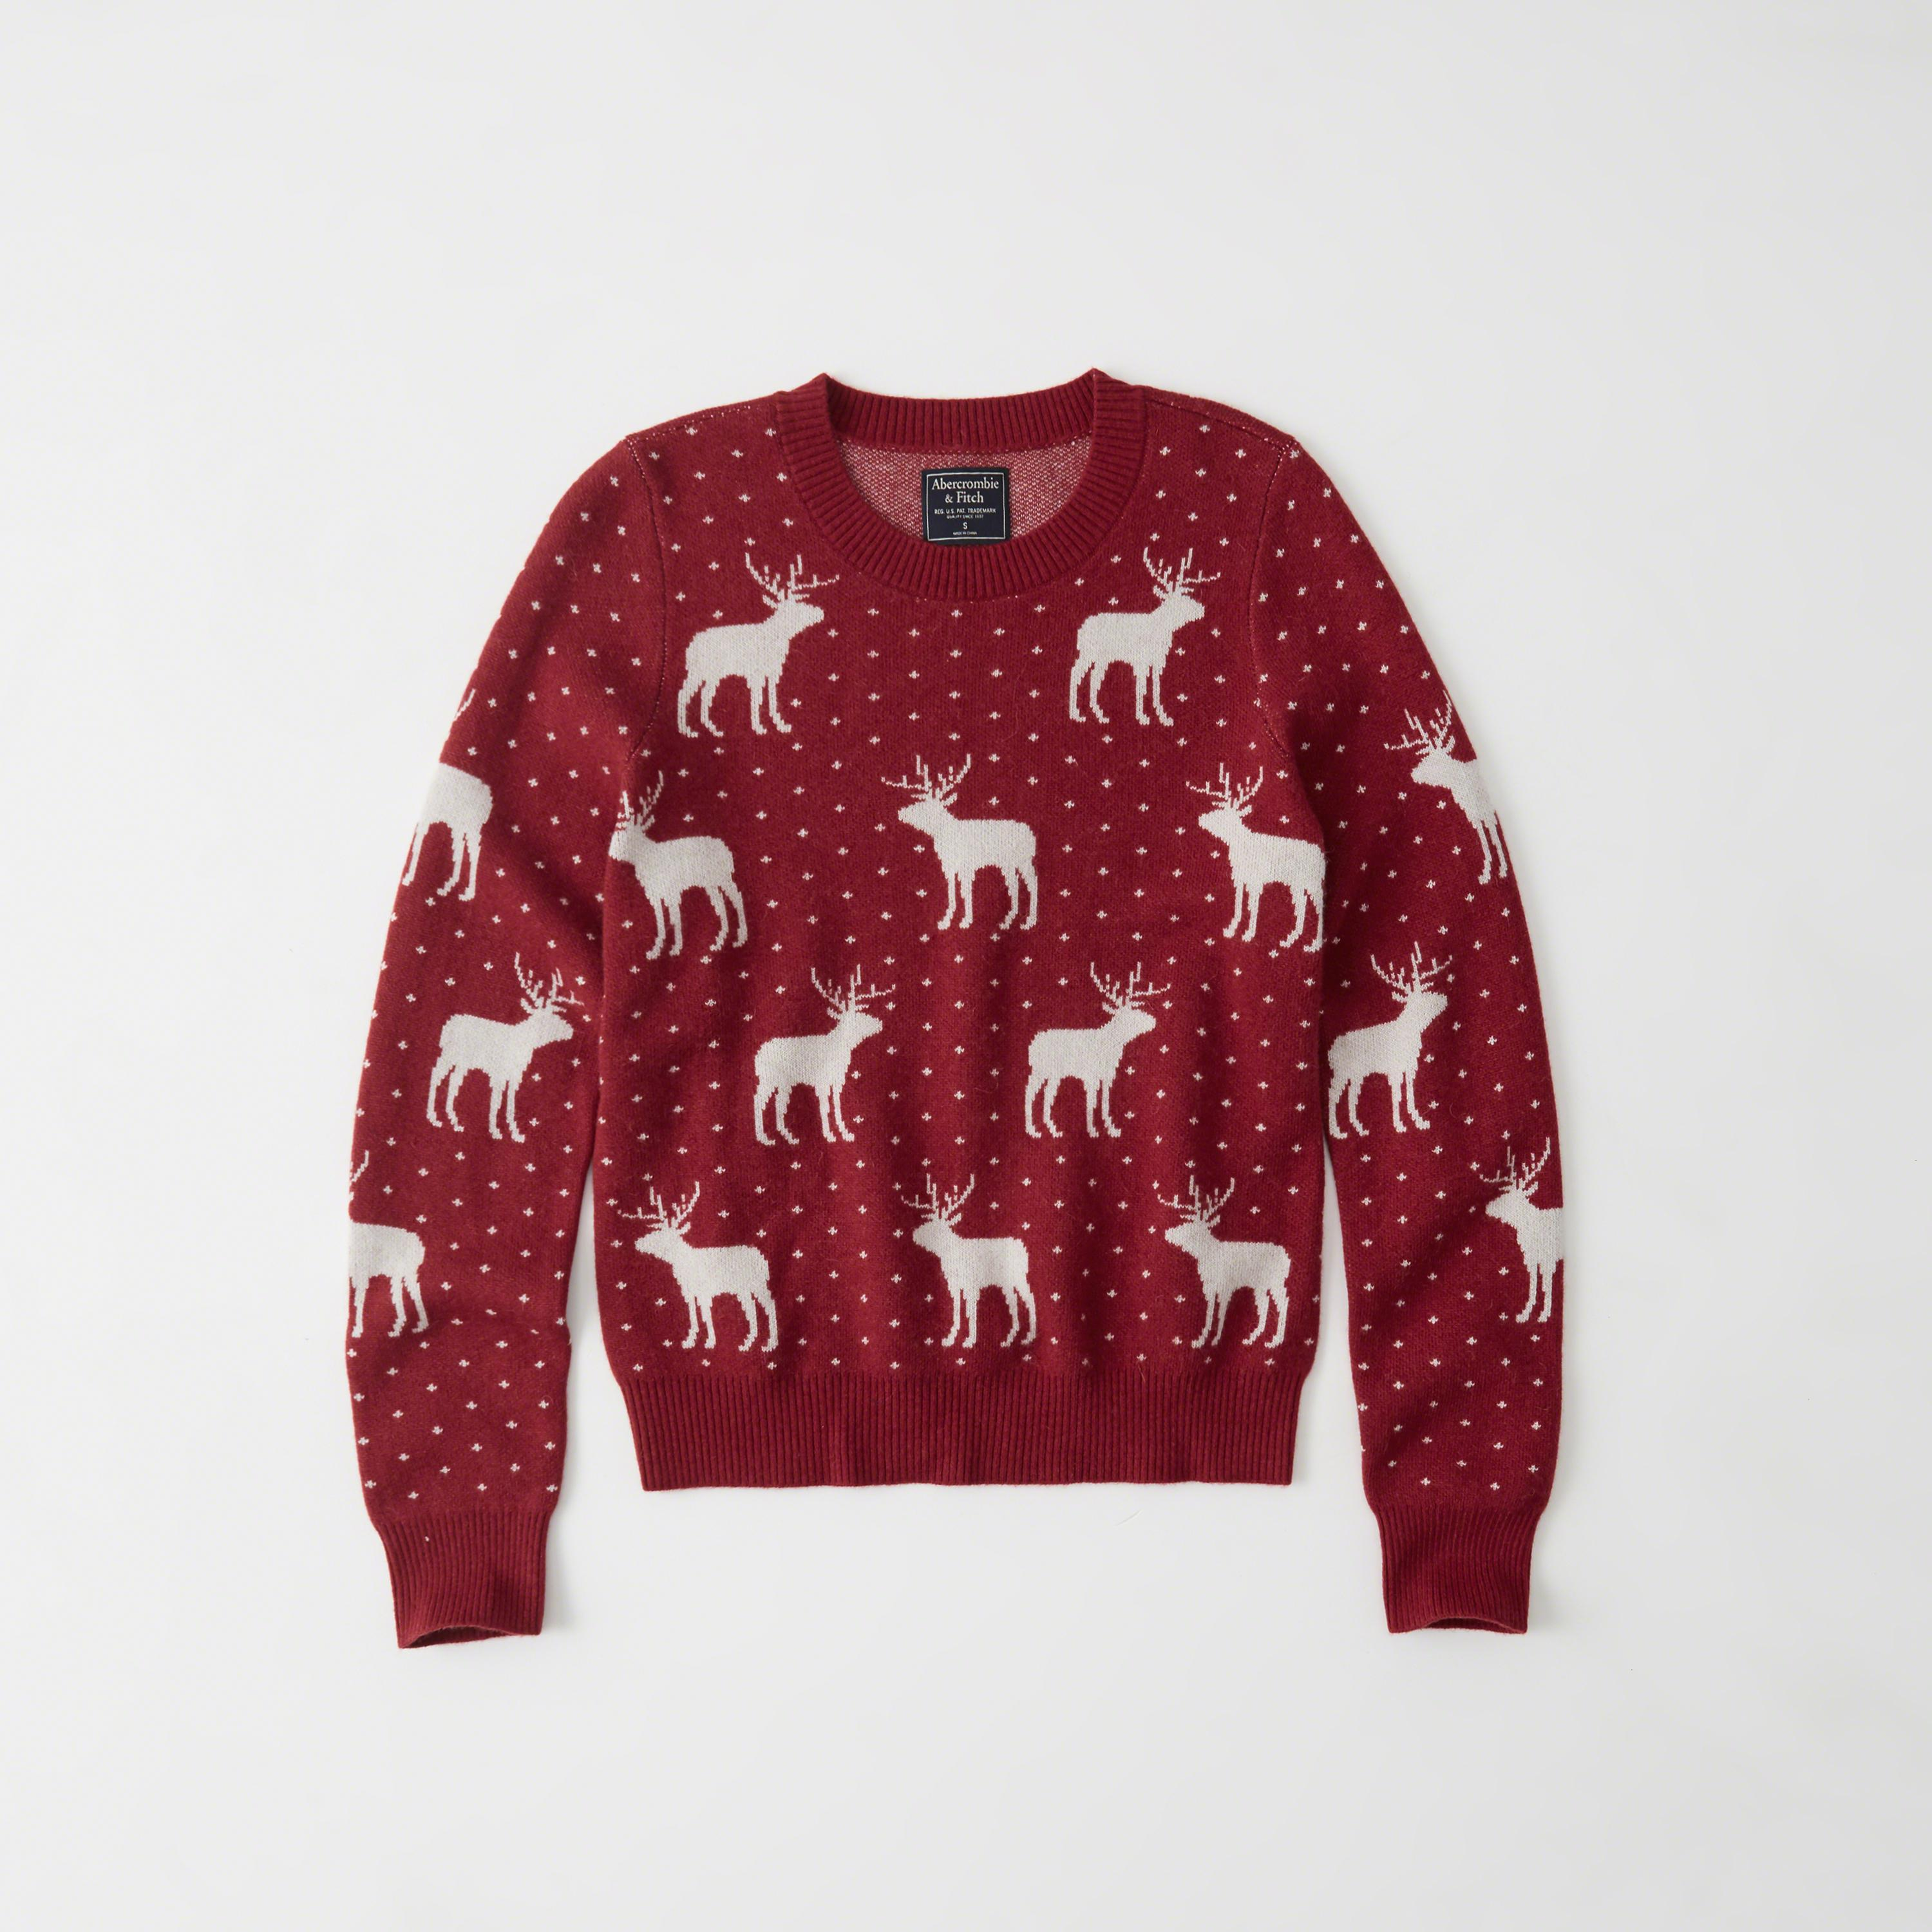 Abercrombie & Fitch Moose Pattern Crew Sweater